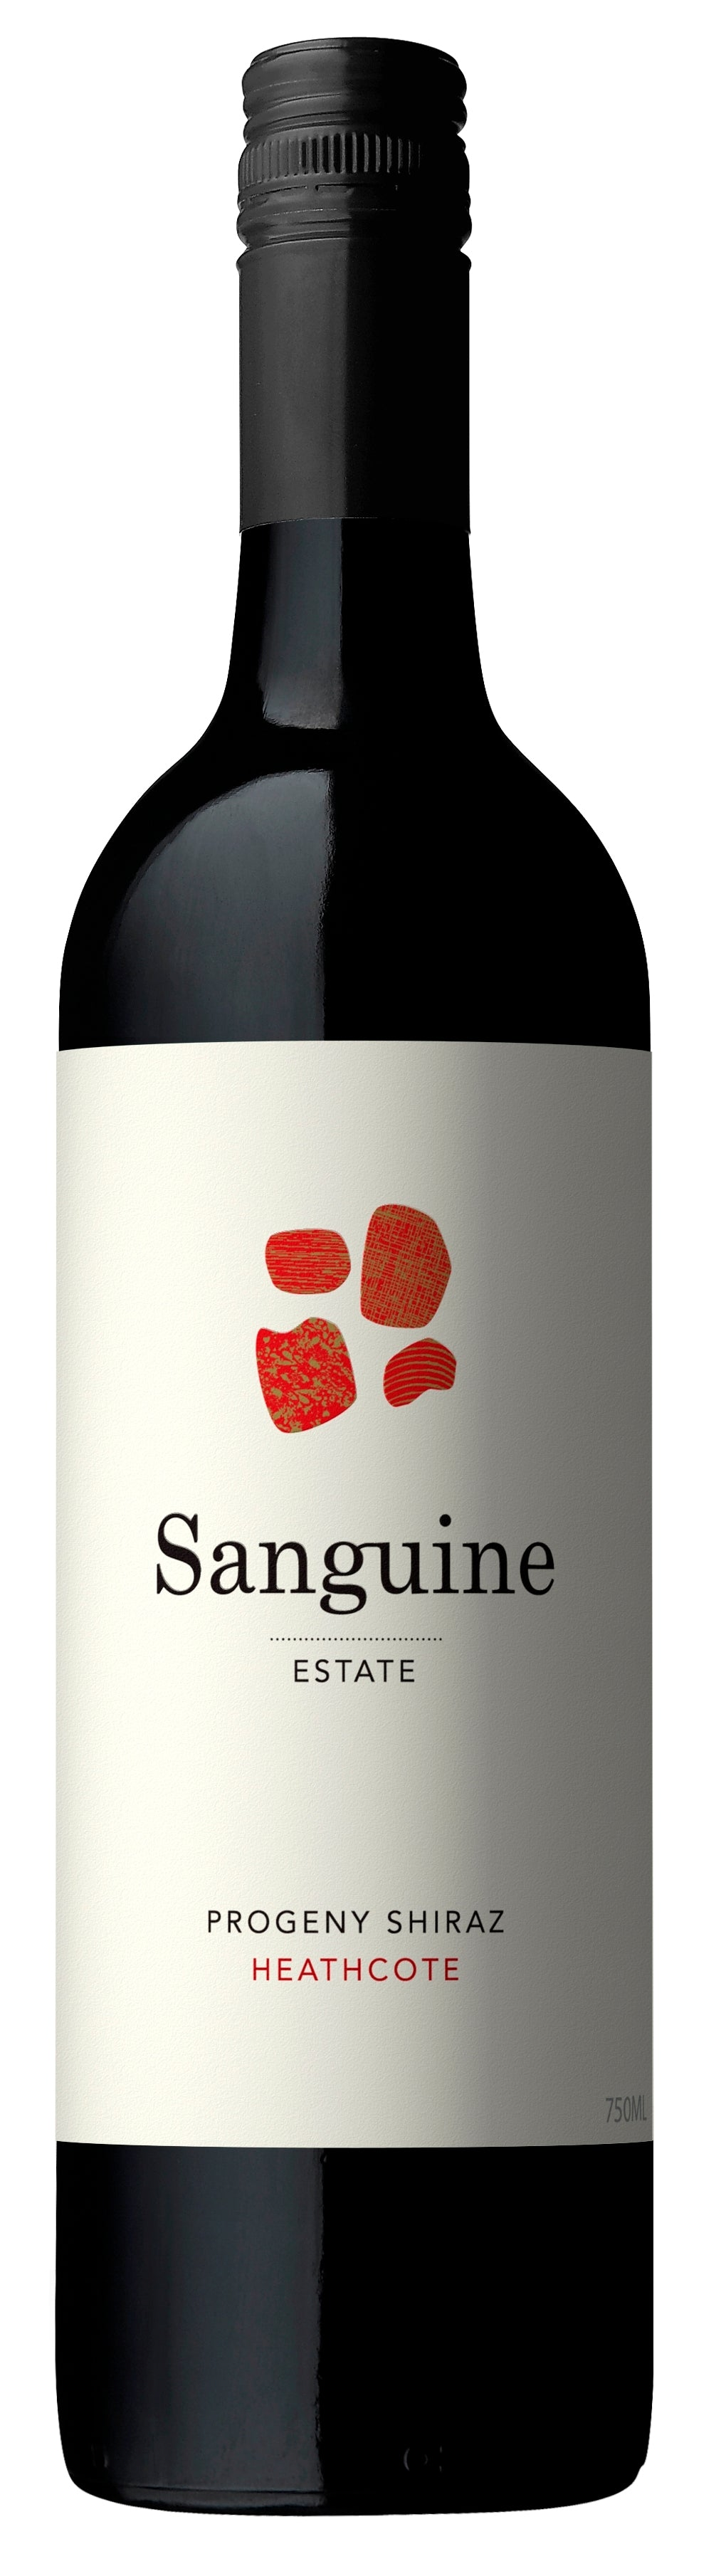 Sanguine Estate Progeny Shiraz 2016